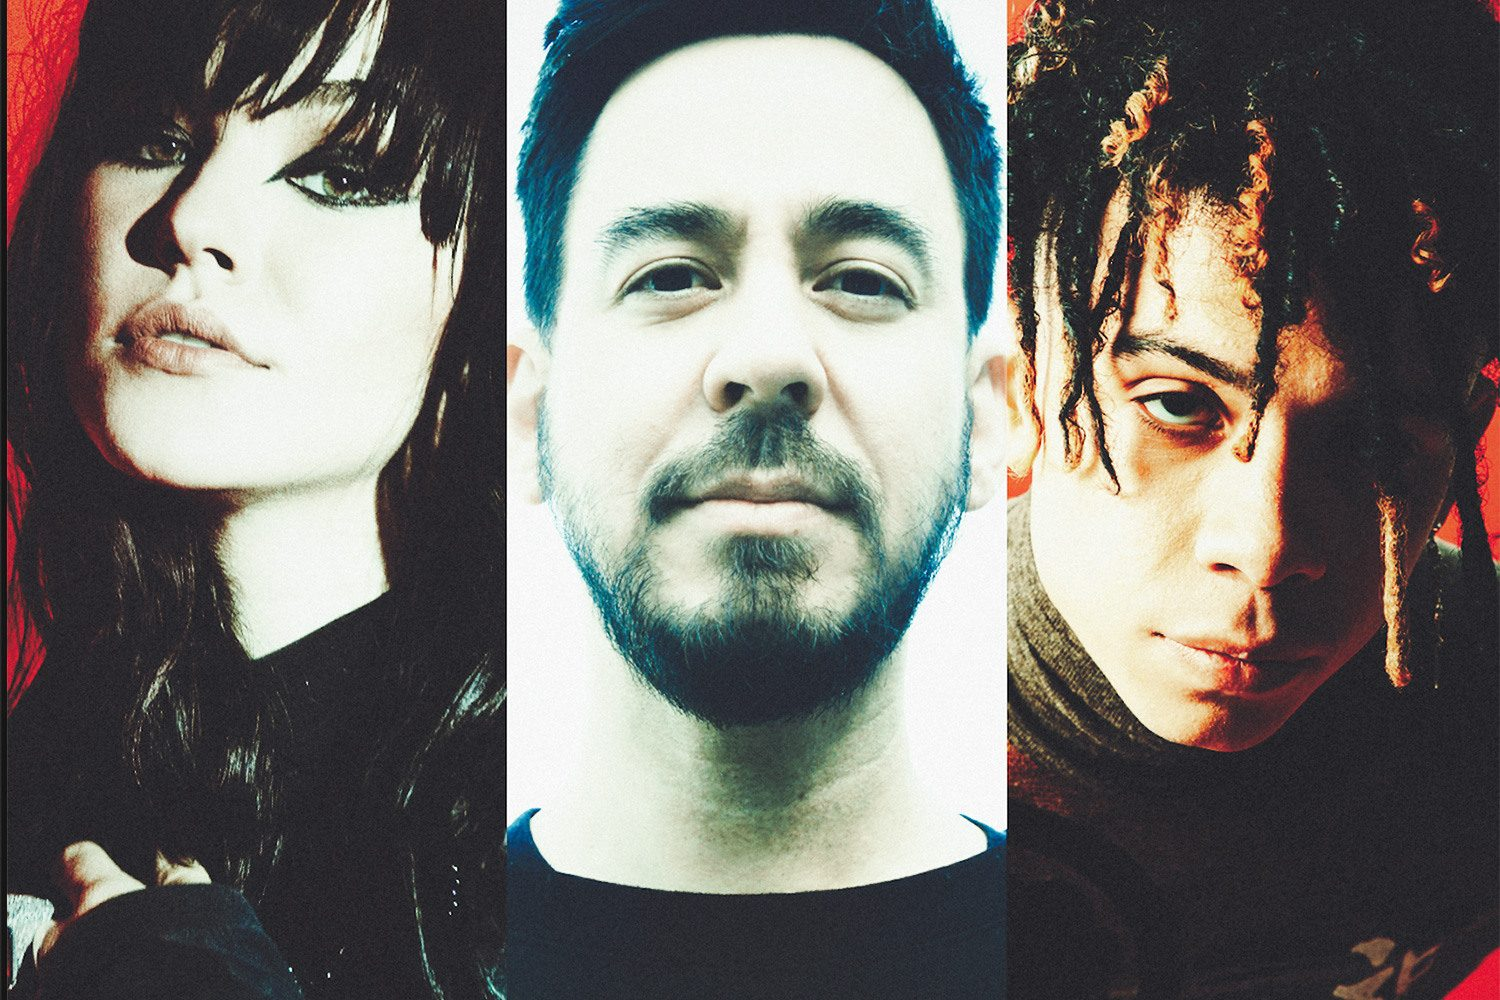 Mike Shinoda has teamed up with Iann Dior and UPSAHL for his new single, 'Happy Endings'